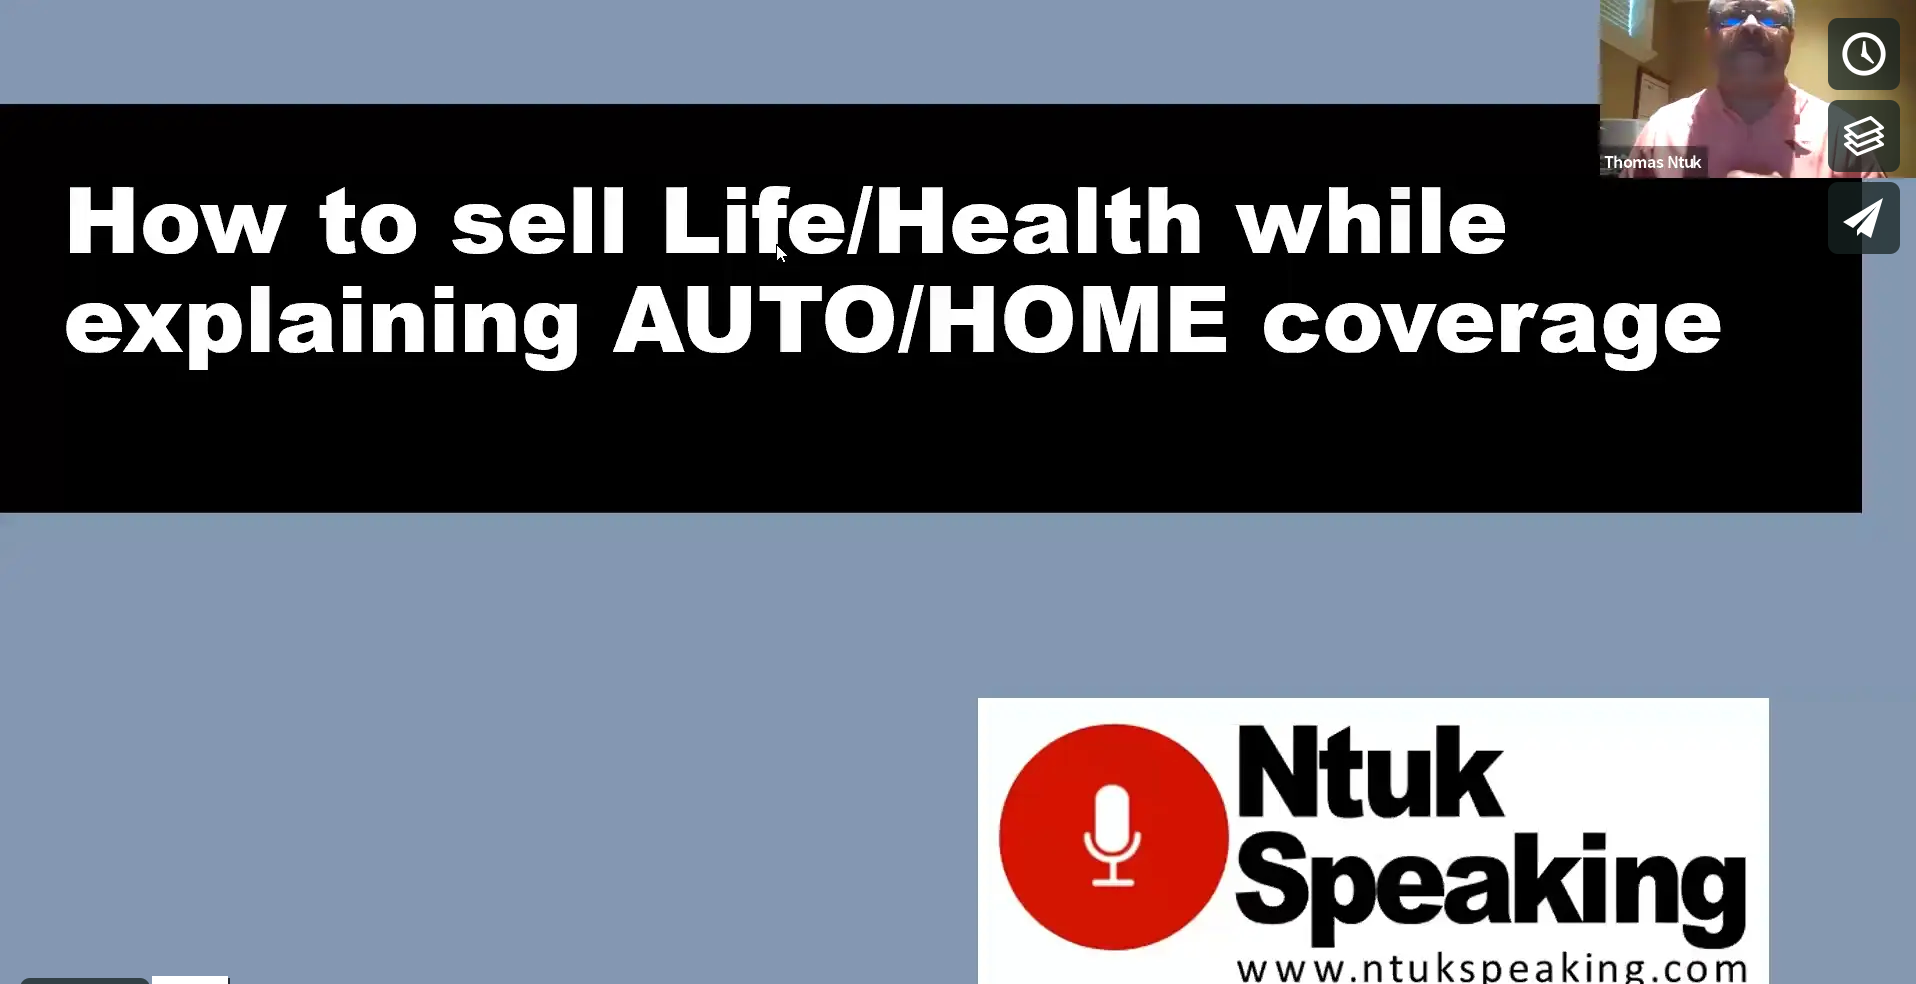 How to Sell Life/Health Insurance While Explaining AUTO/HOME Coverages with Thomas Ntuk